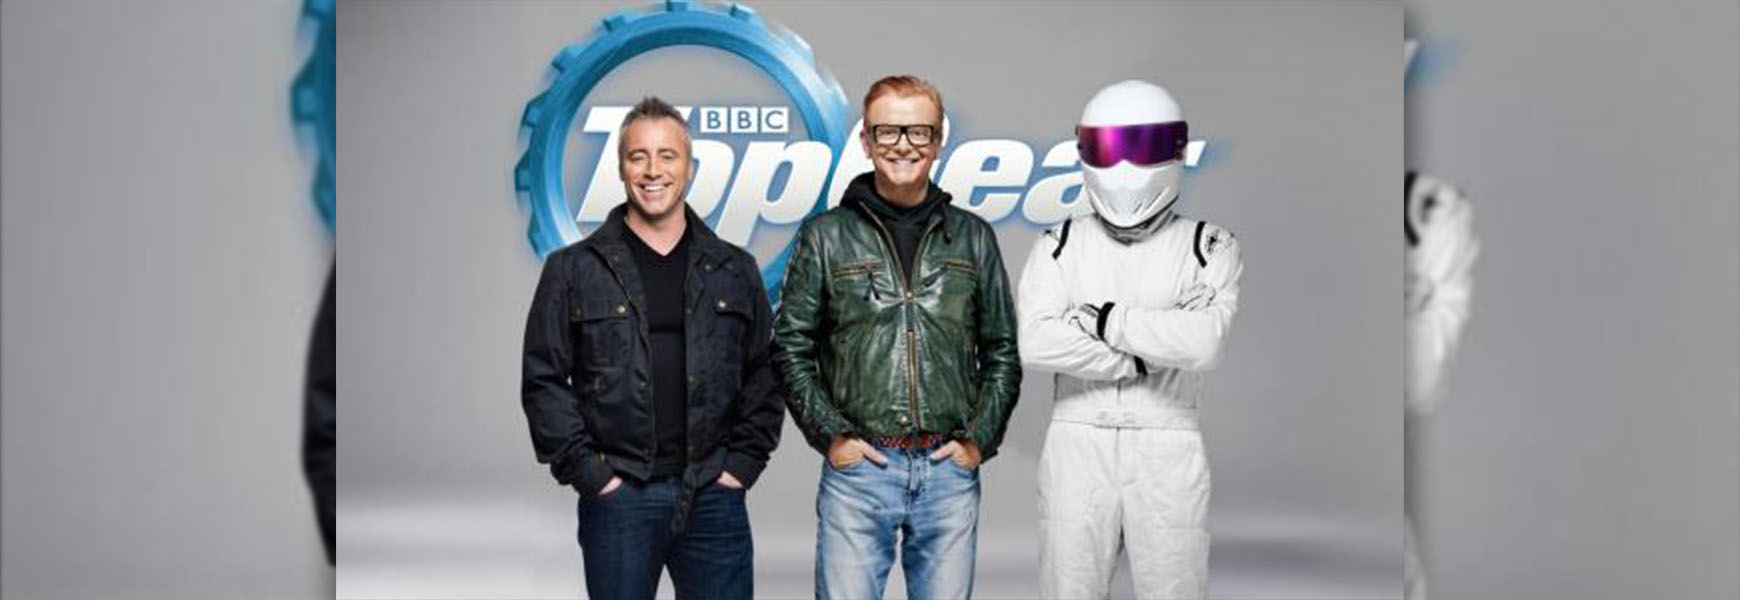 Top Gear films in Montenegro tomorrow